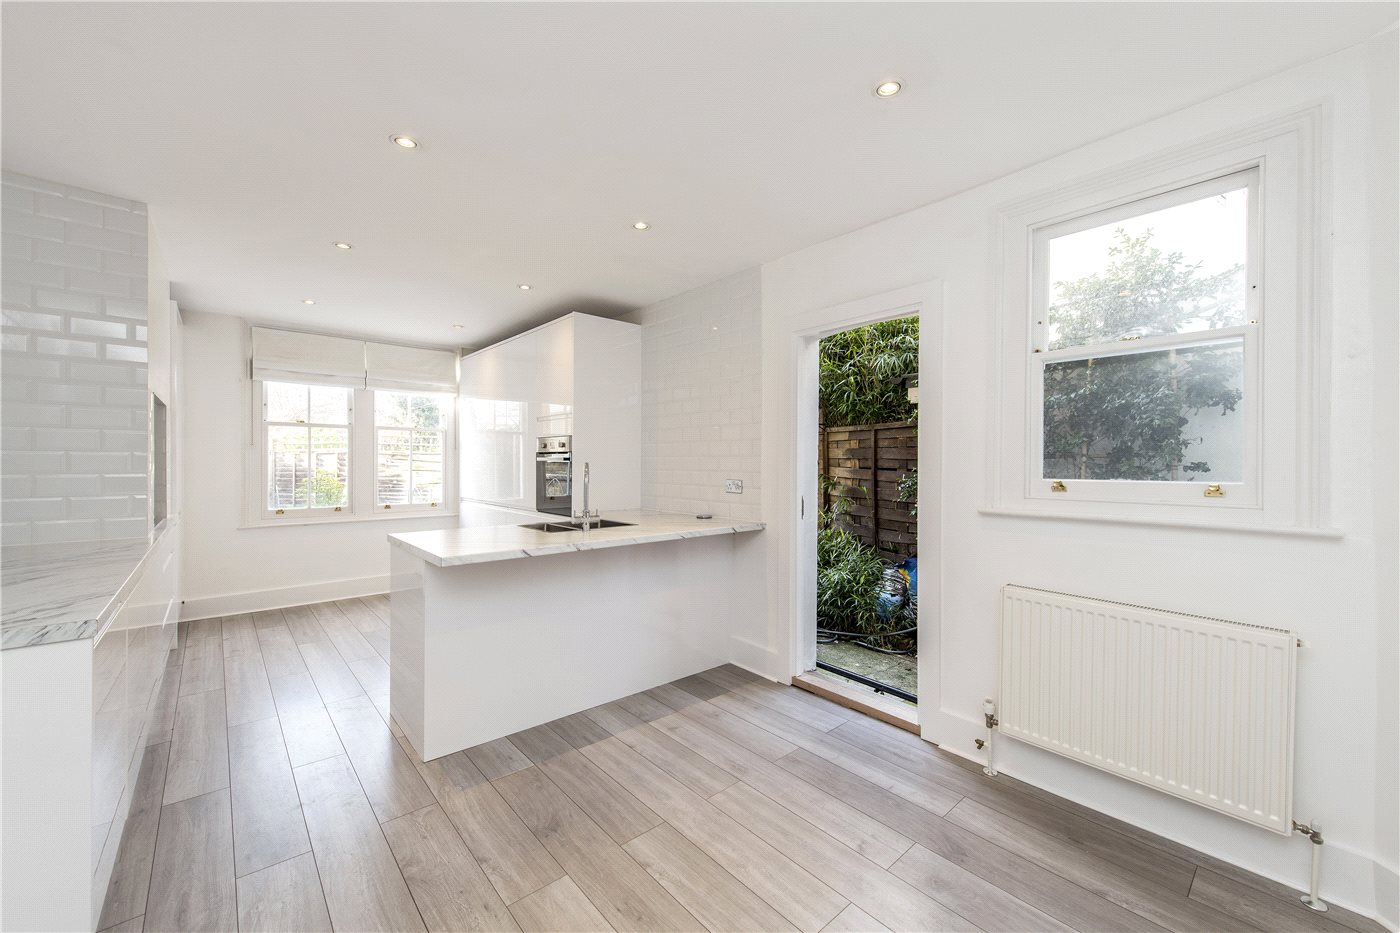 4 bedroom property to rent in Cotherstone Road, London, SW2 - £3000 pcm